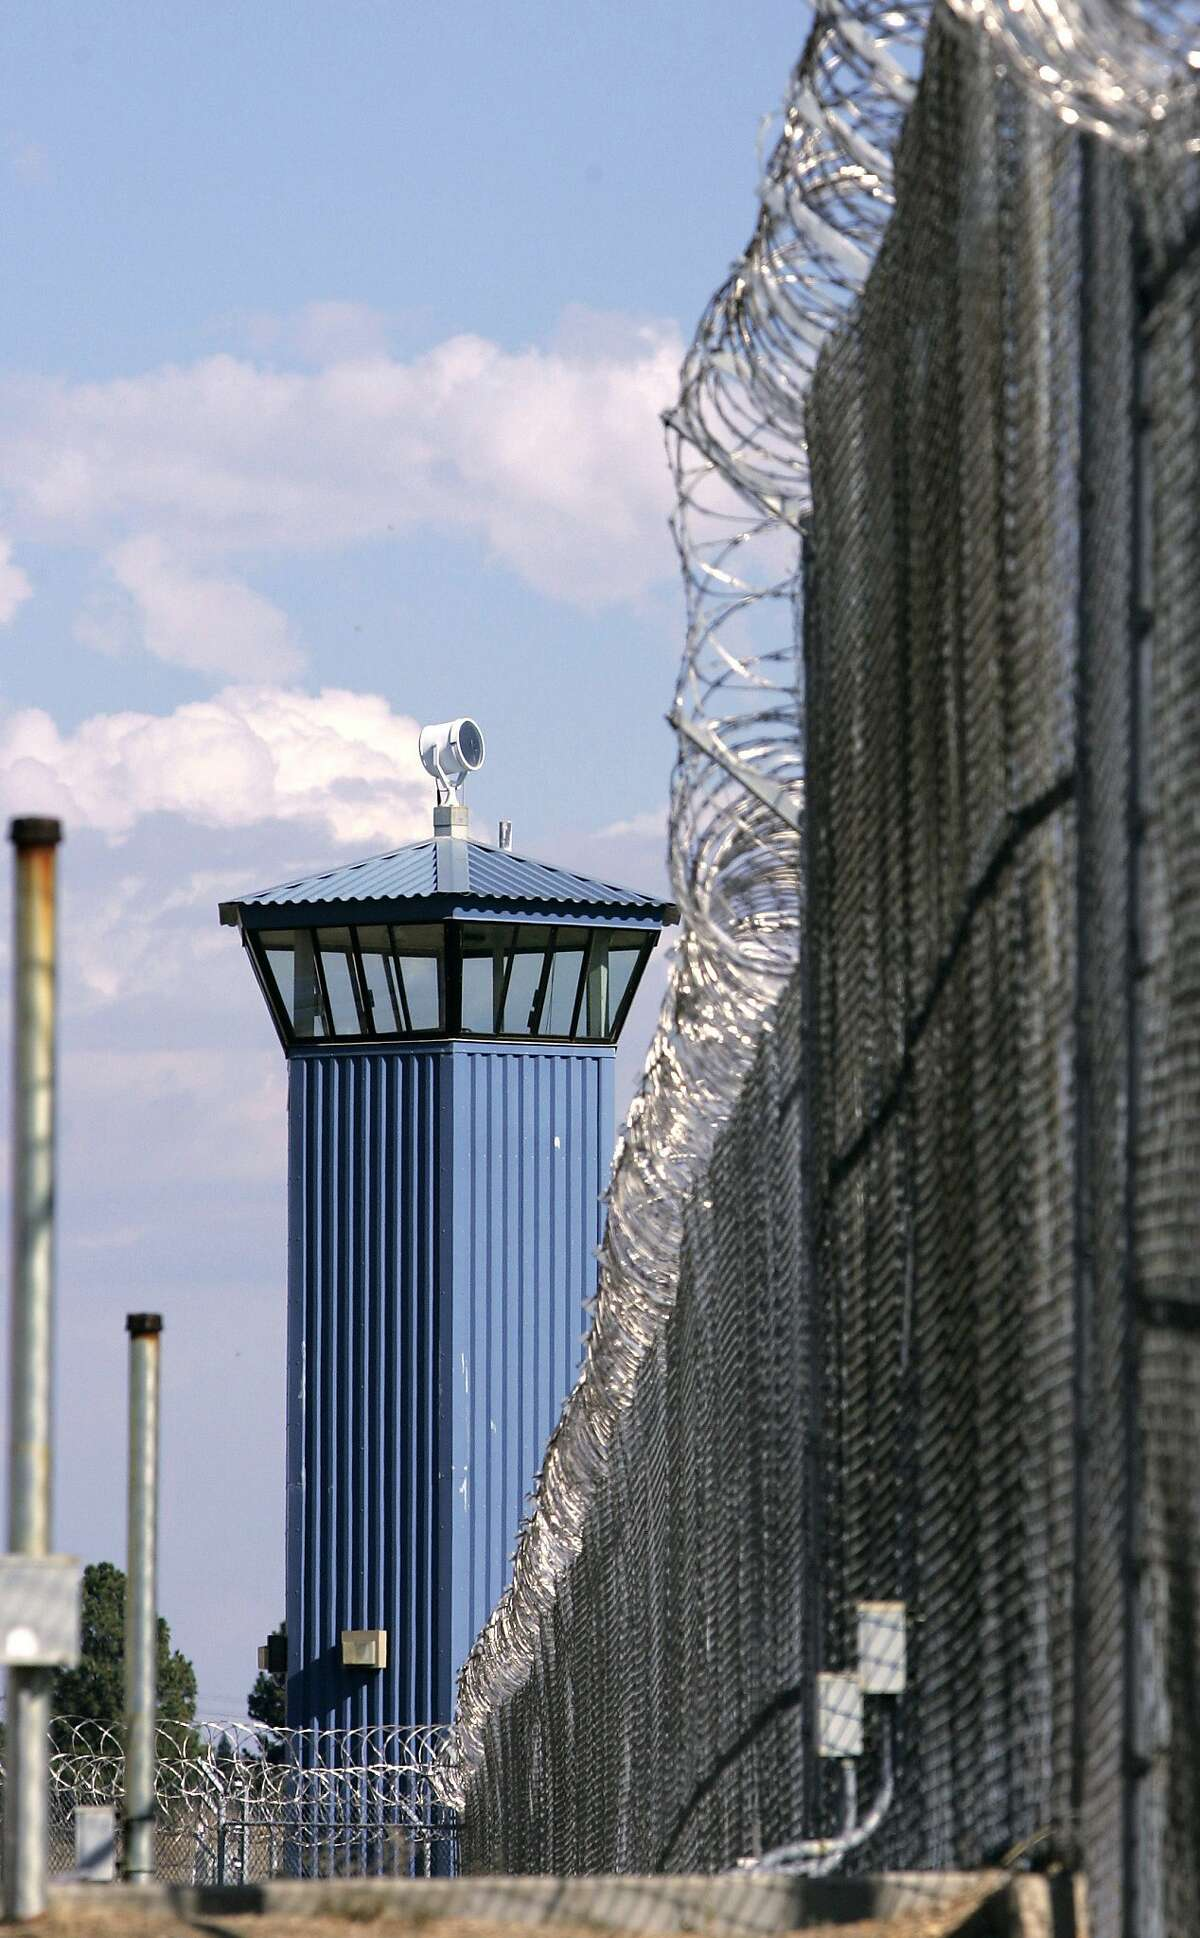 FILE - In this Aug. 31, 2007 file photo, a guard tower stands behind the wire fence that surrounds California State Prison, Sacramento, in Folsom, Calif. Corrections officials say one inmate is dead and several others have been taken to an outside hospital to be treated for stab winds after a riot broke out at one of the prison's exercise yard, Wednesday, Aug. 12, 2015.(AP Photo/Rich Pedroncelli, File)